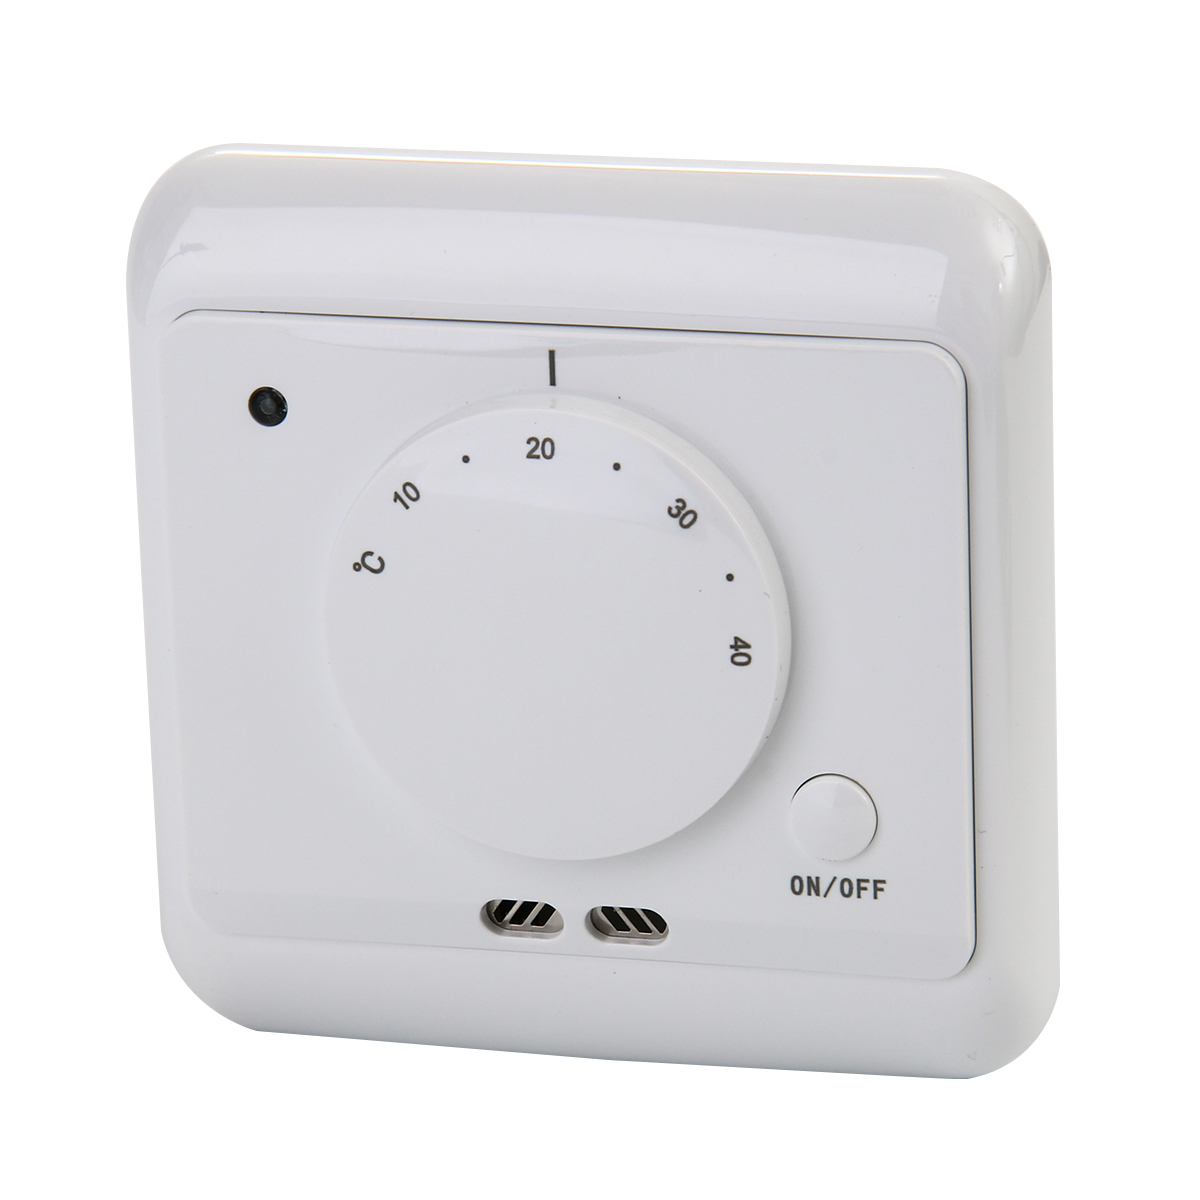 230v led raumthermostat fu bodenheizung thermostat mit ein aus schalter bi88 ebay. Black Bedroom Furniture Sets. Home Design Ideas